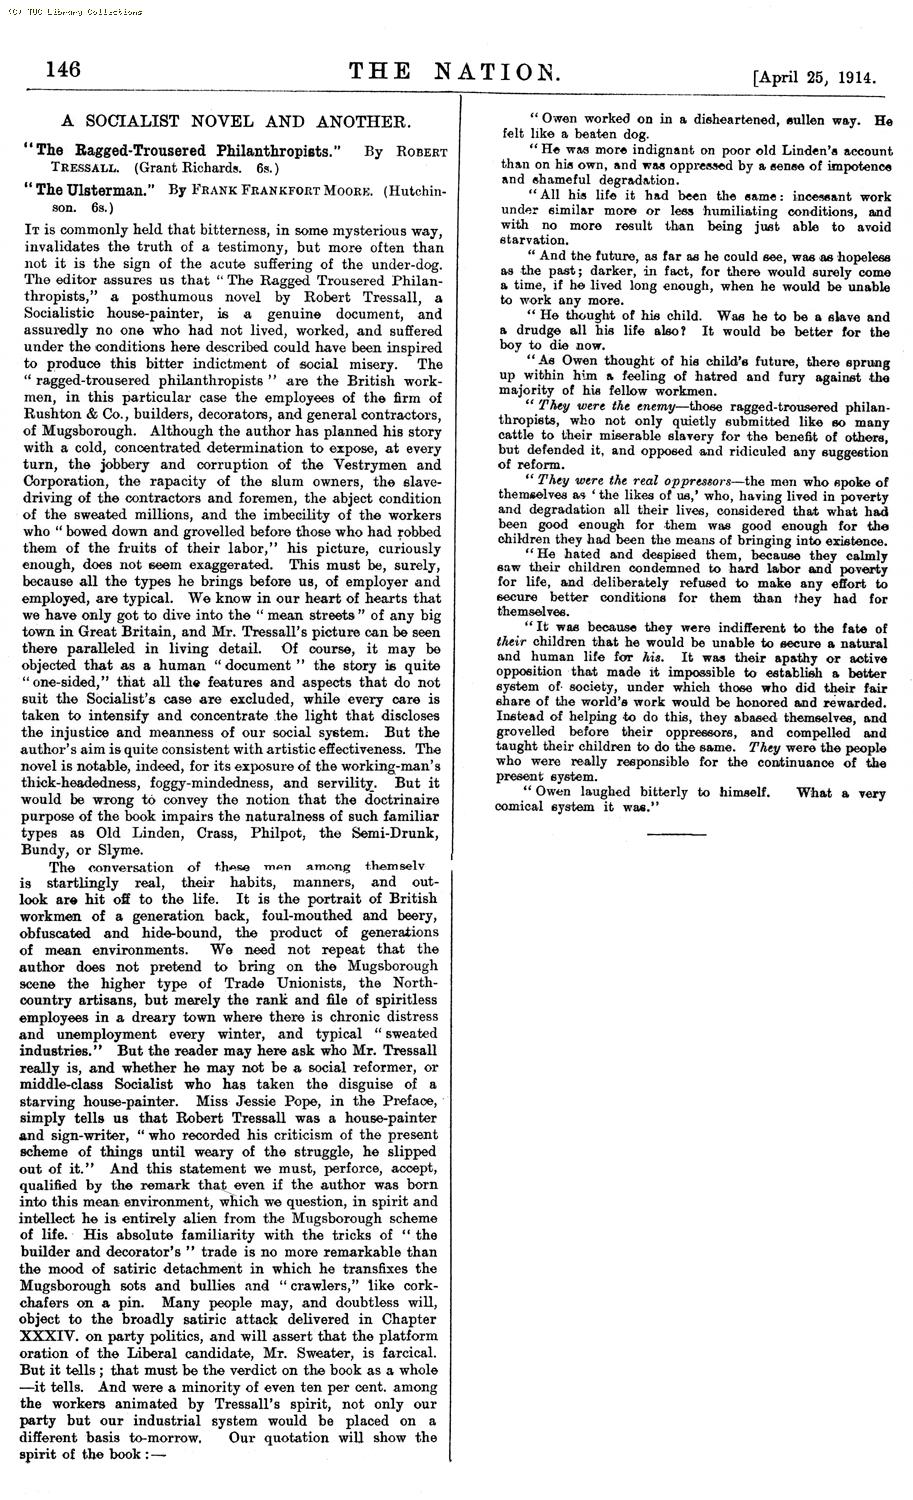 Review - The Ragged Trousered Philanthropists, 25 April 1914, 'The Nation'